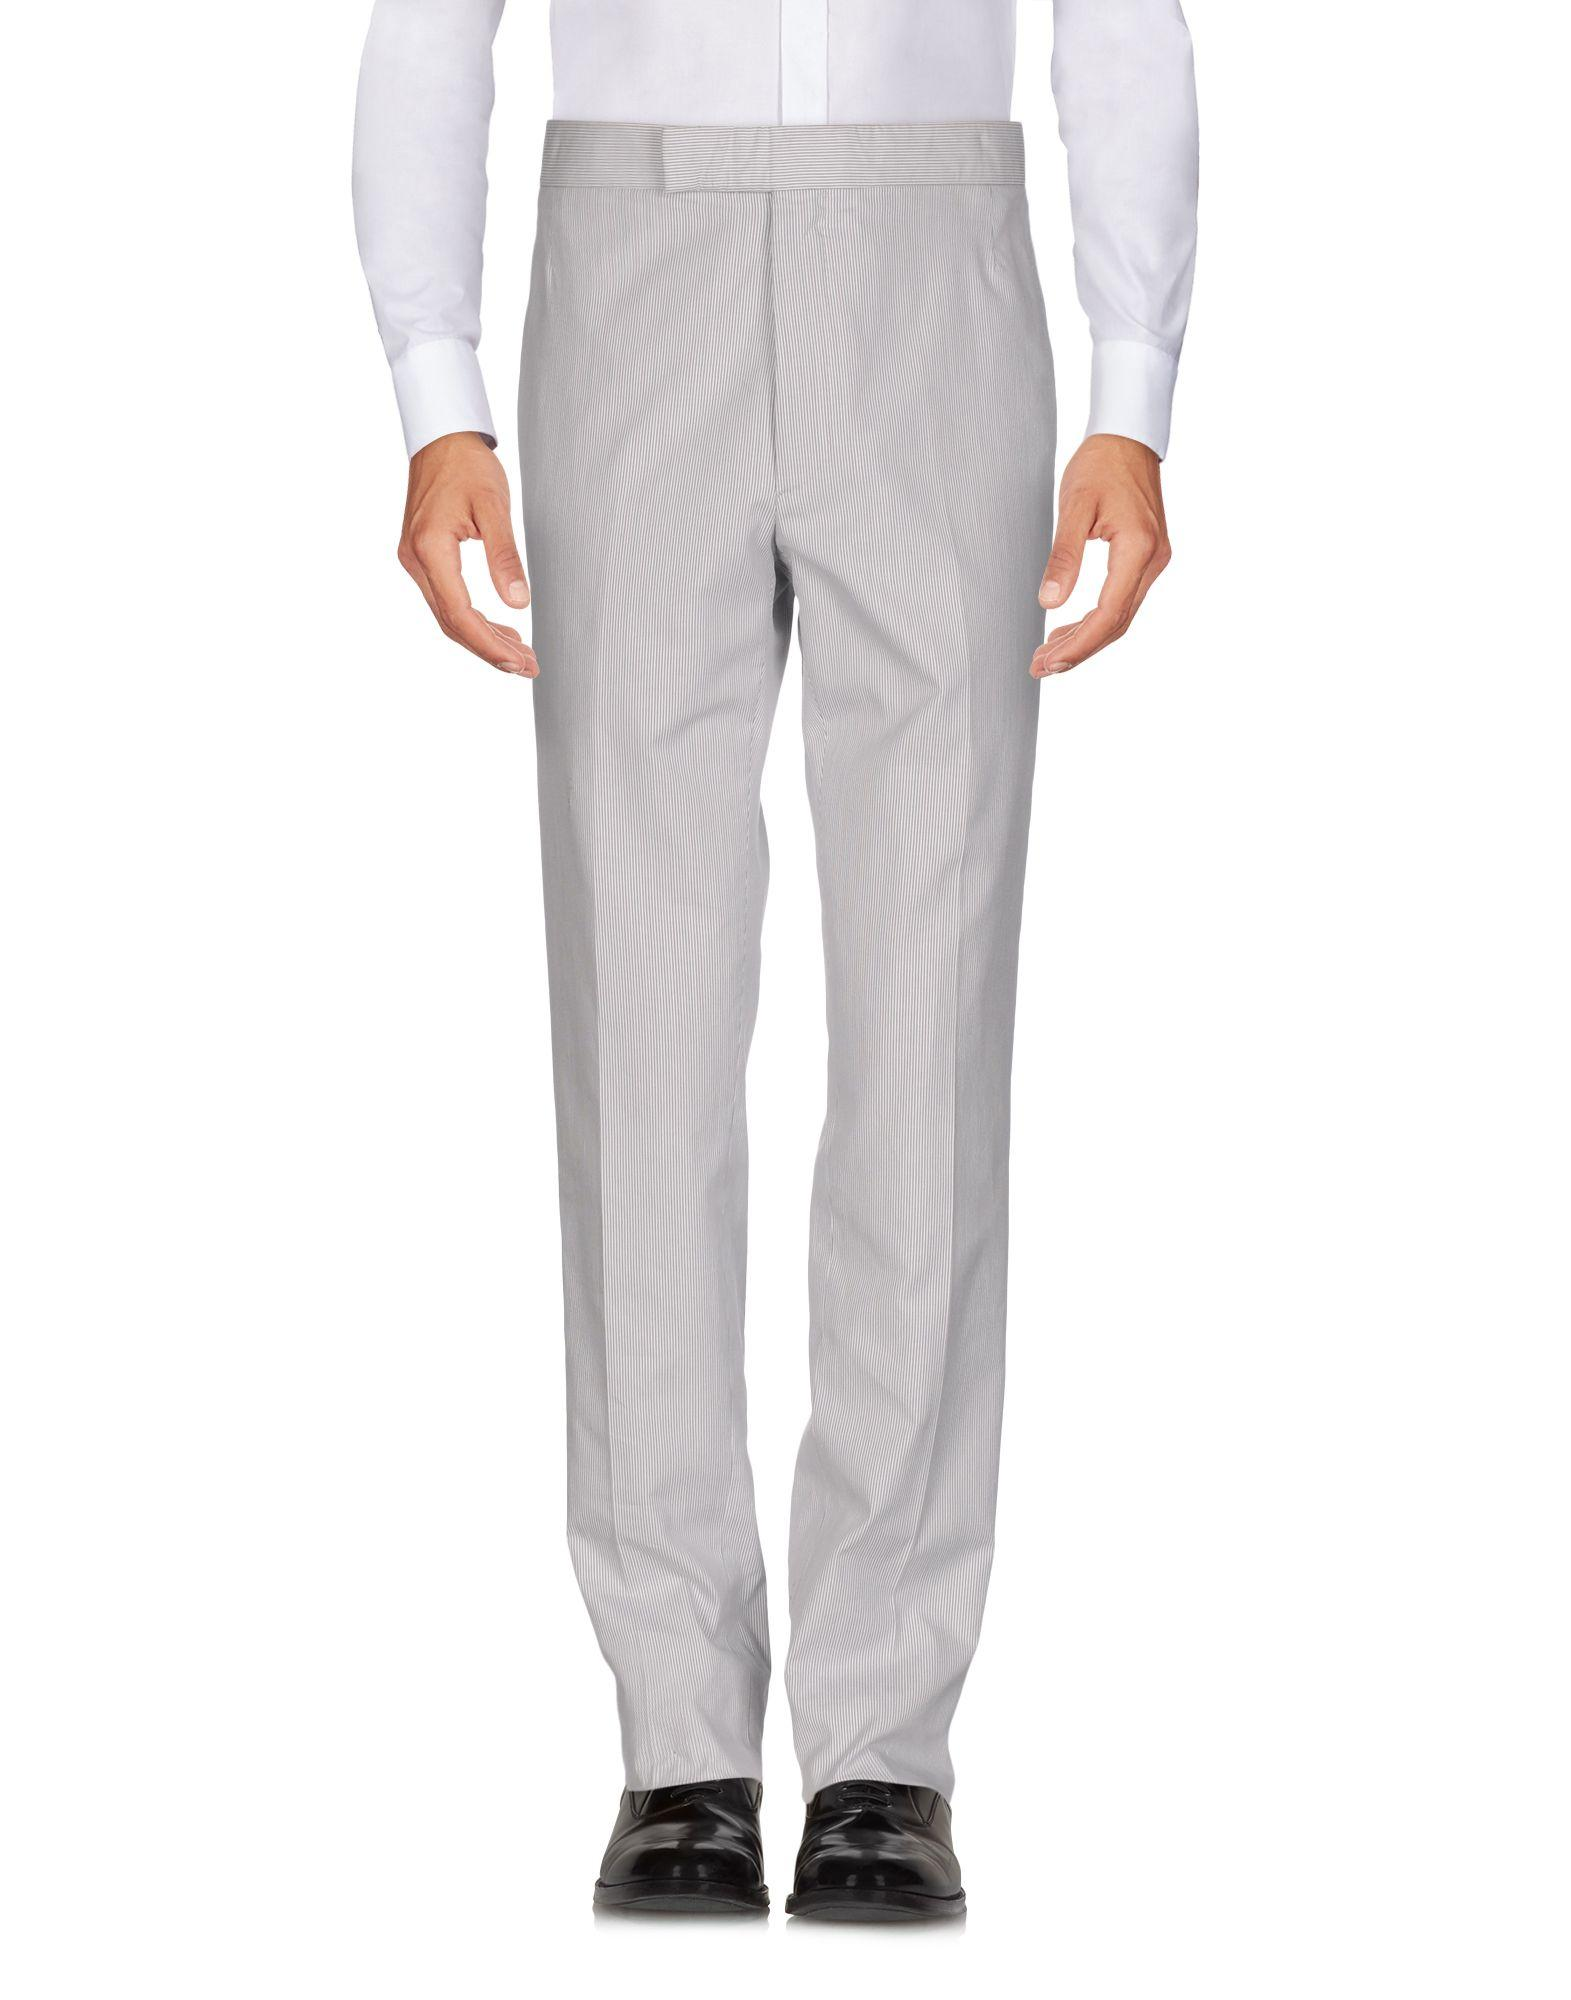 Thom Browne Casual Pants In Light Grey